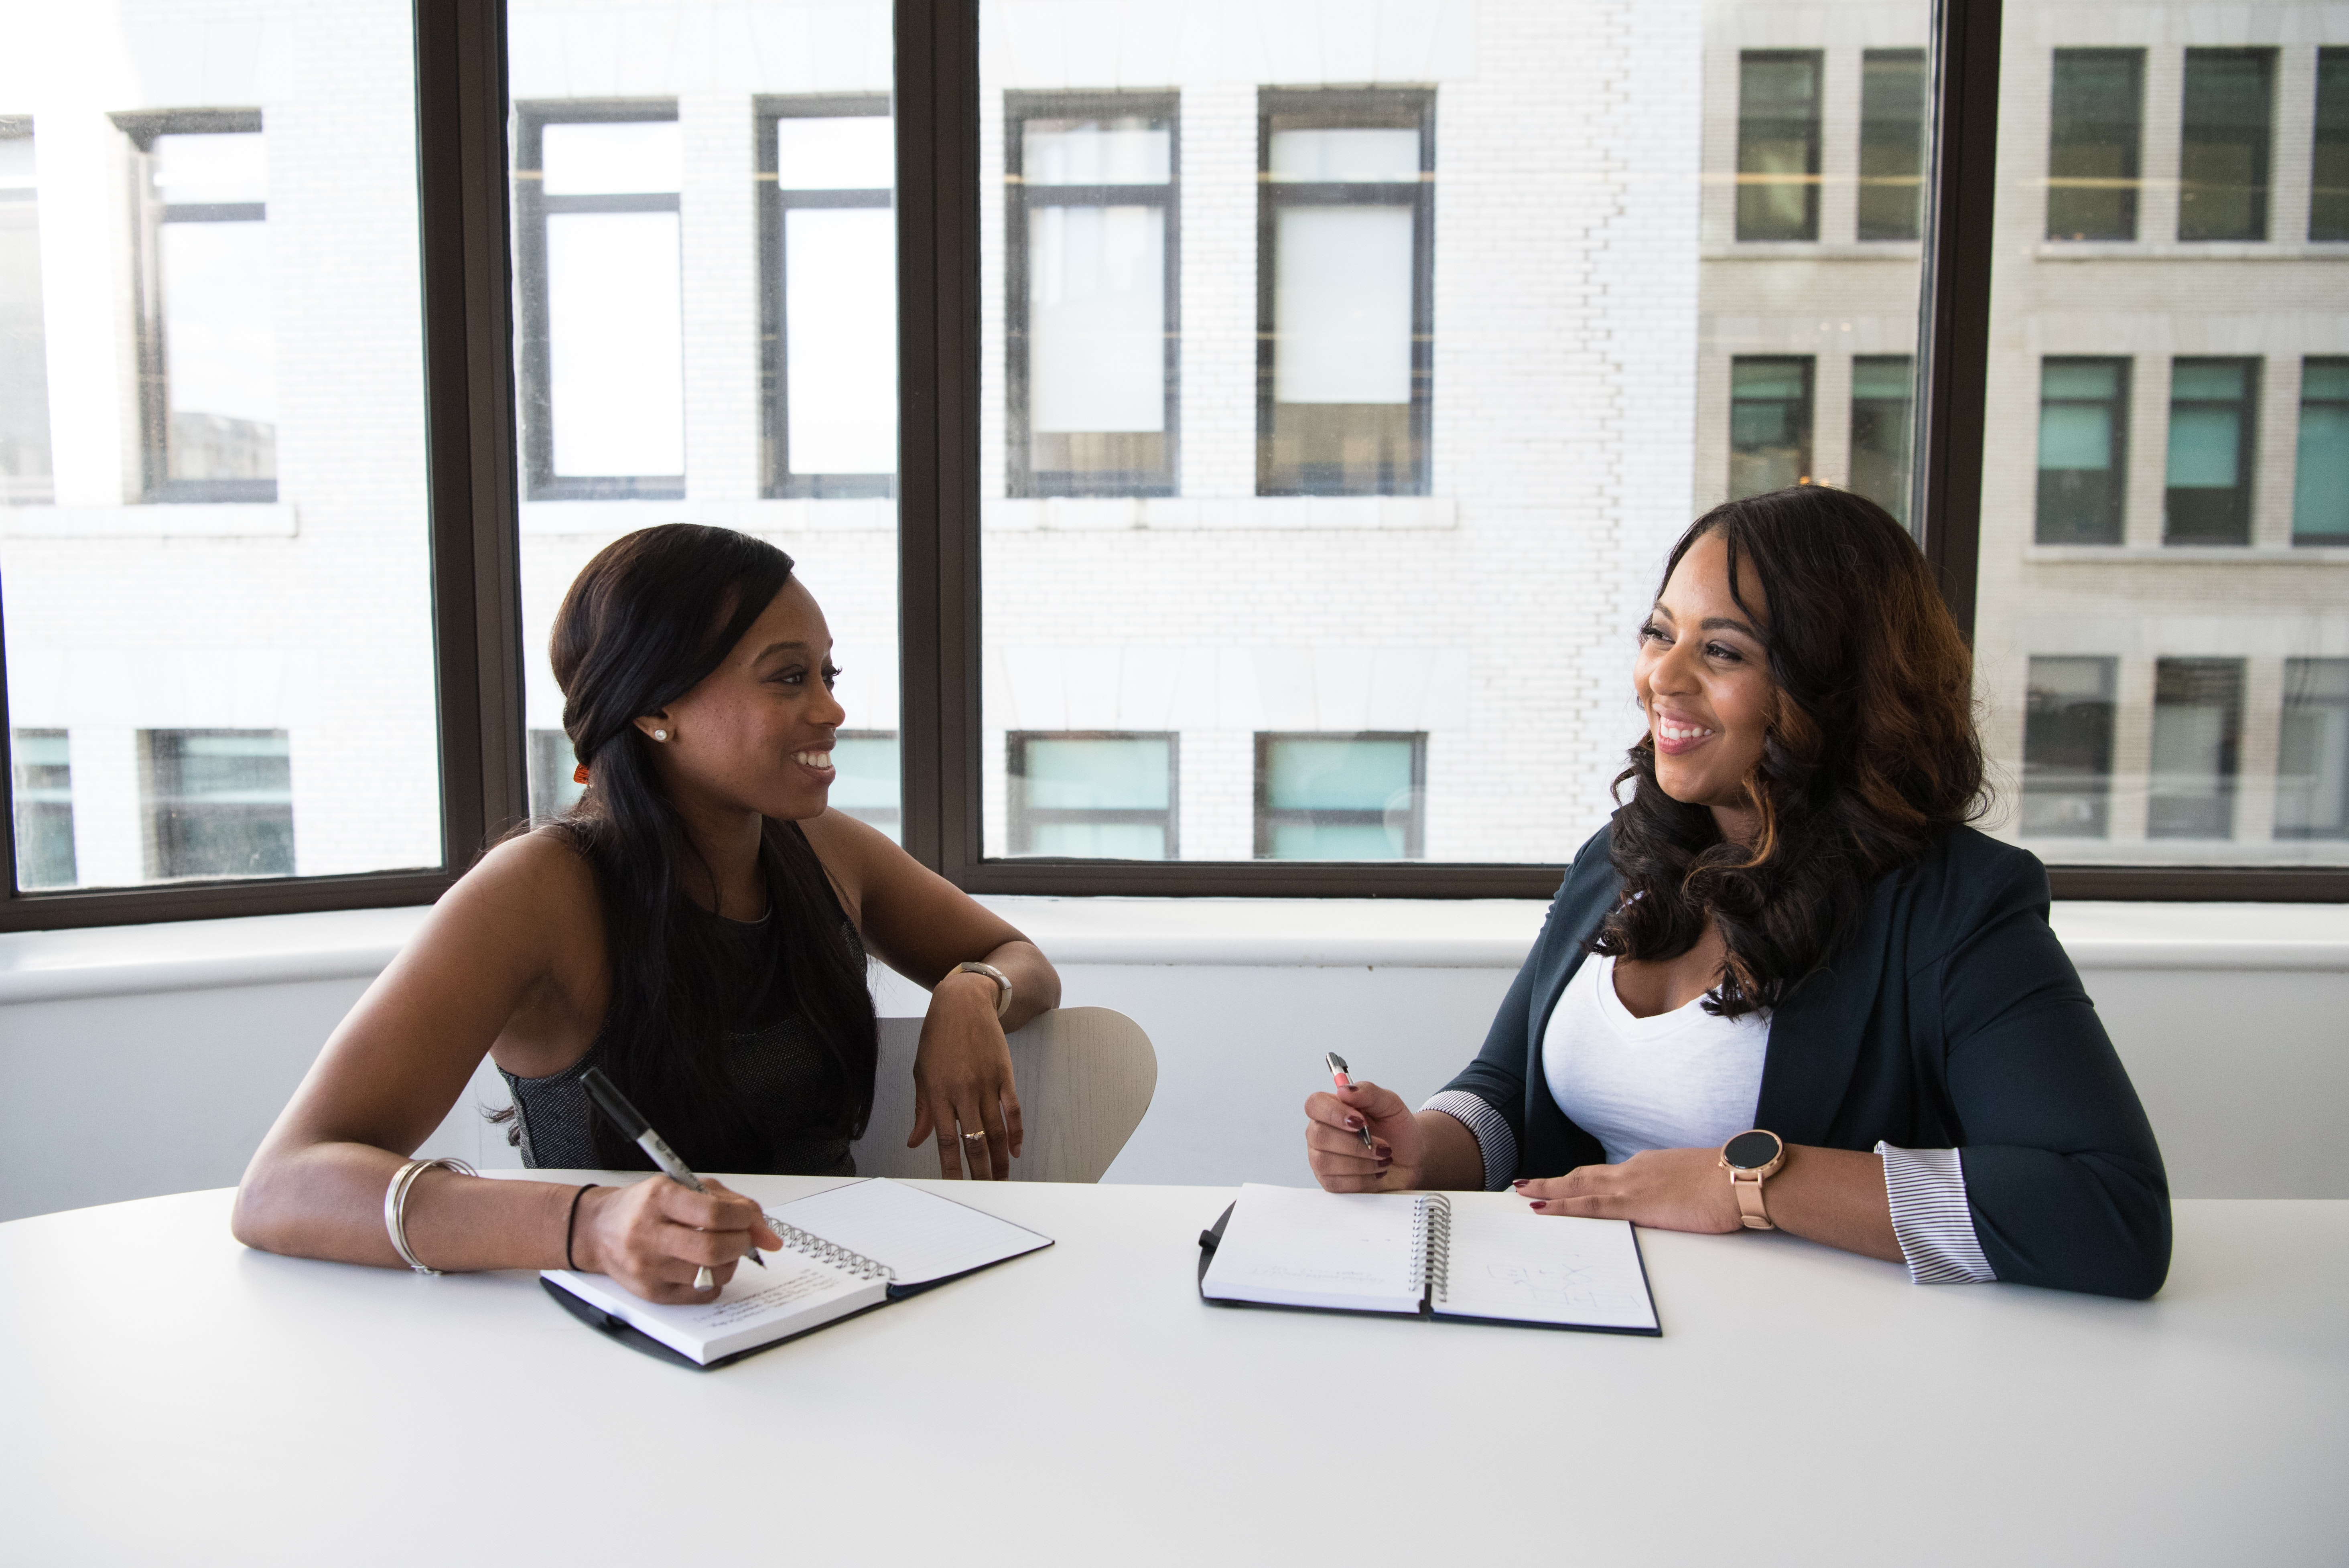 Being prepared for an interview can help you land that teaching job